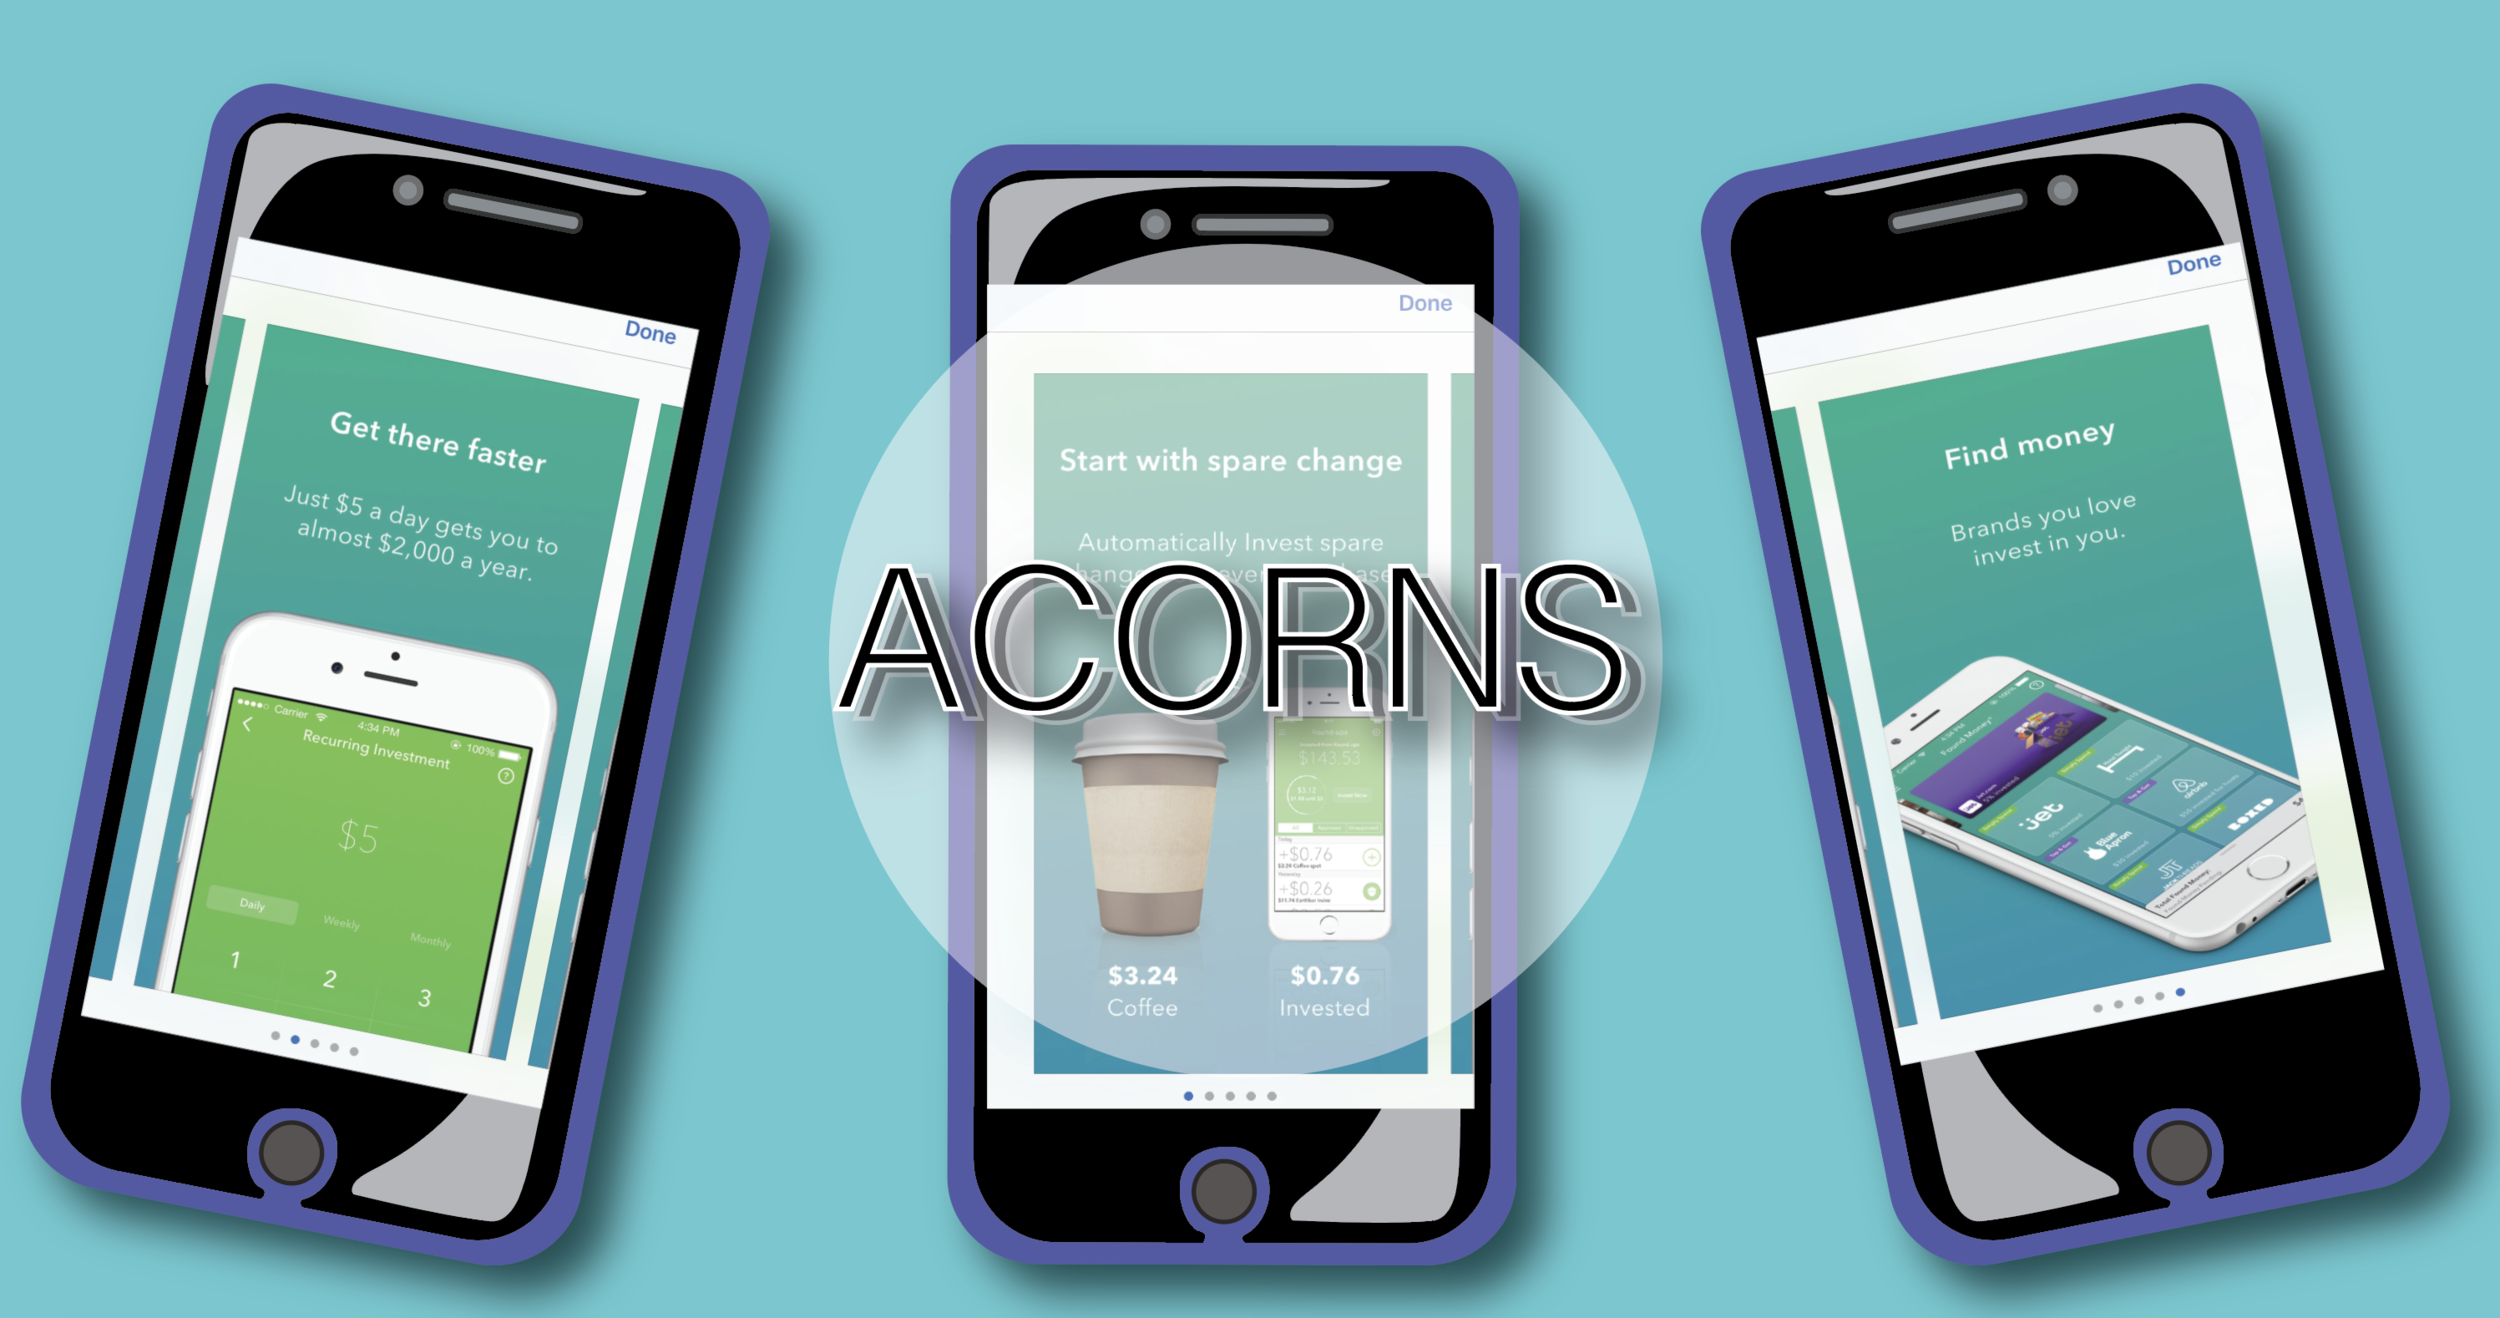 Visit the  ACORNS  site.